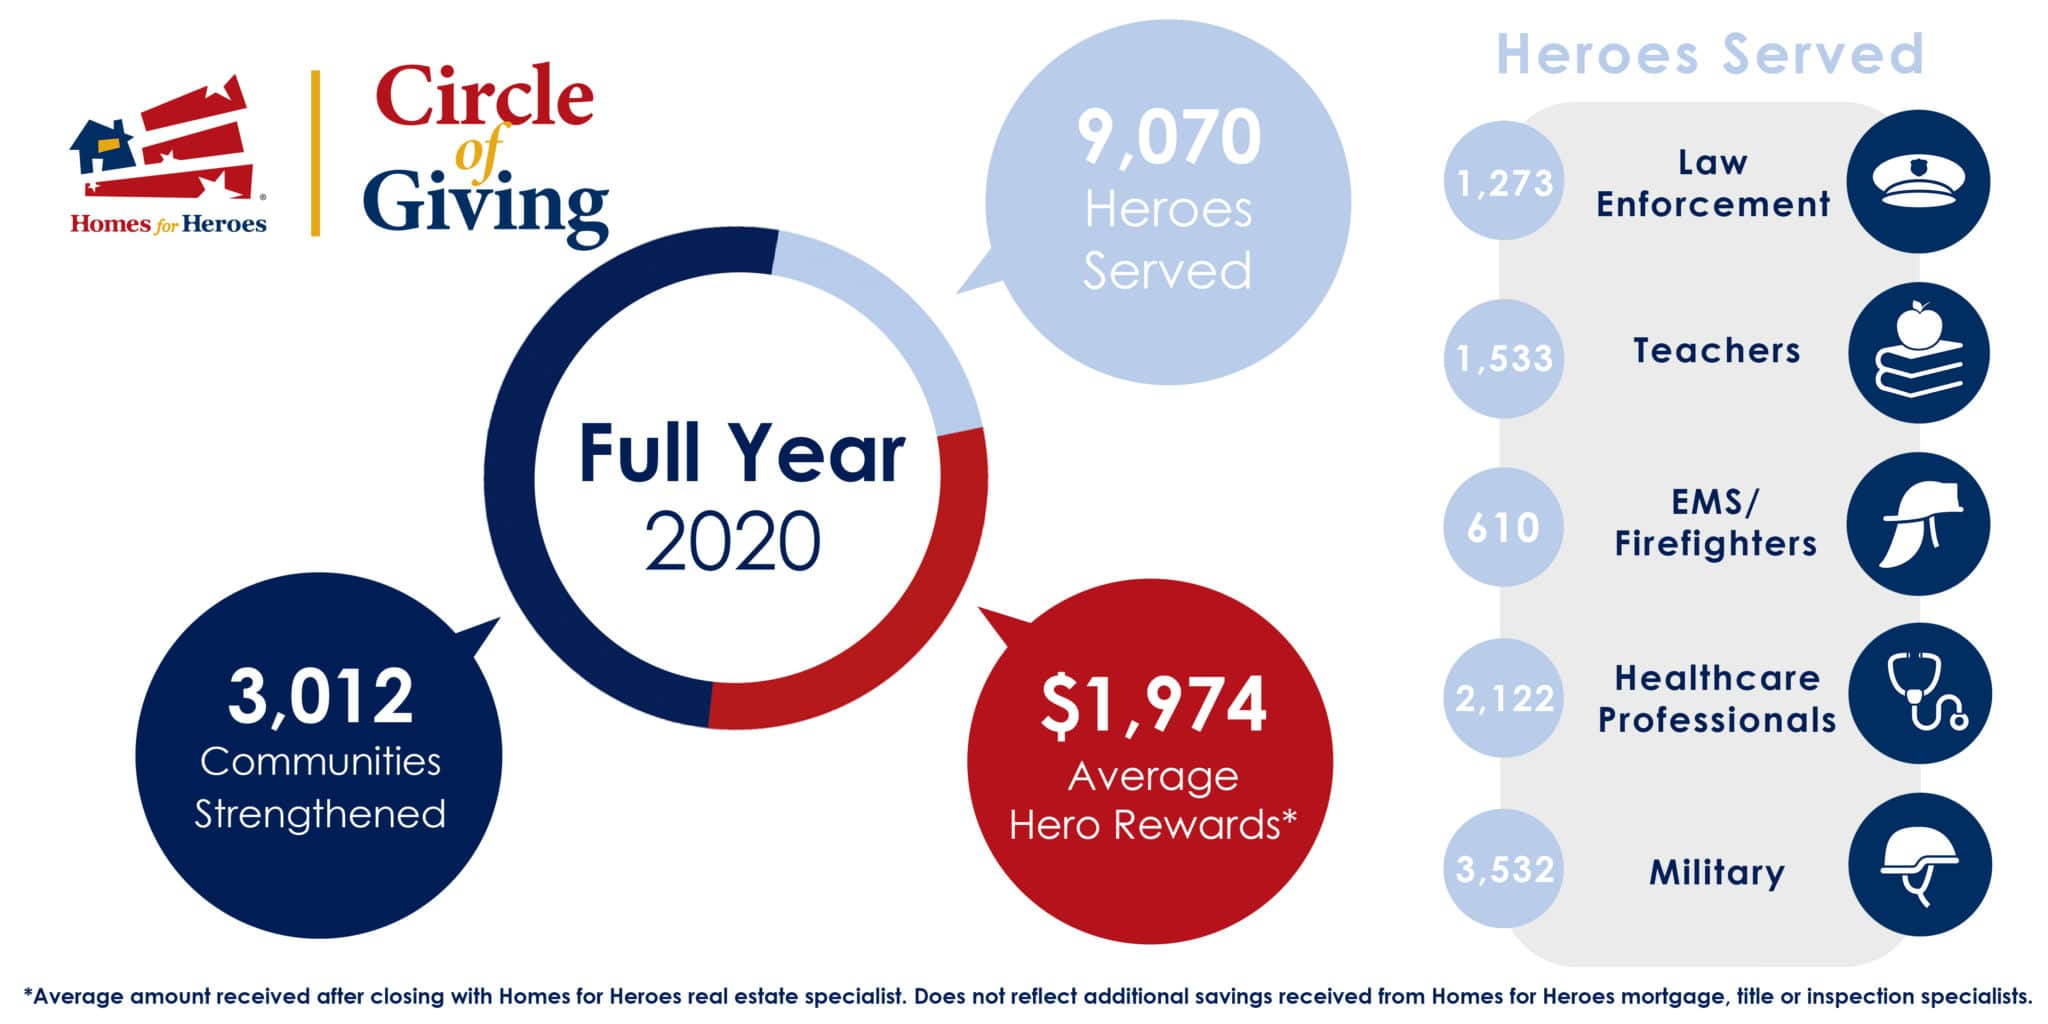 Homes for Heroes 2020 full year numbers heroes served